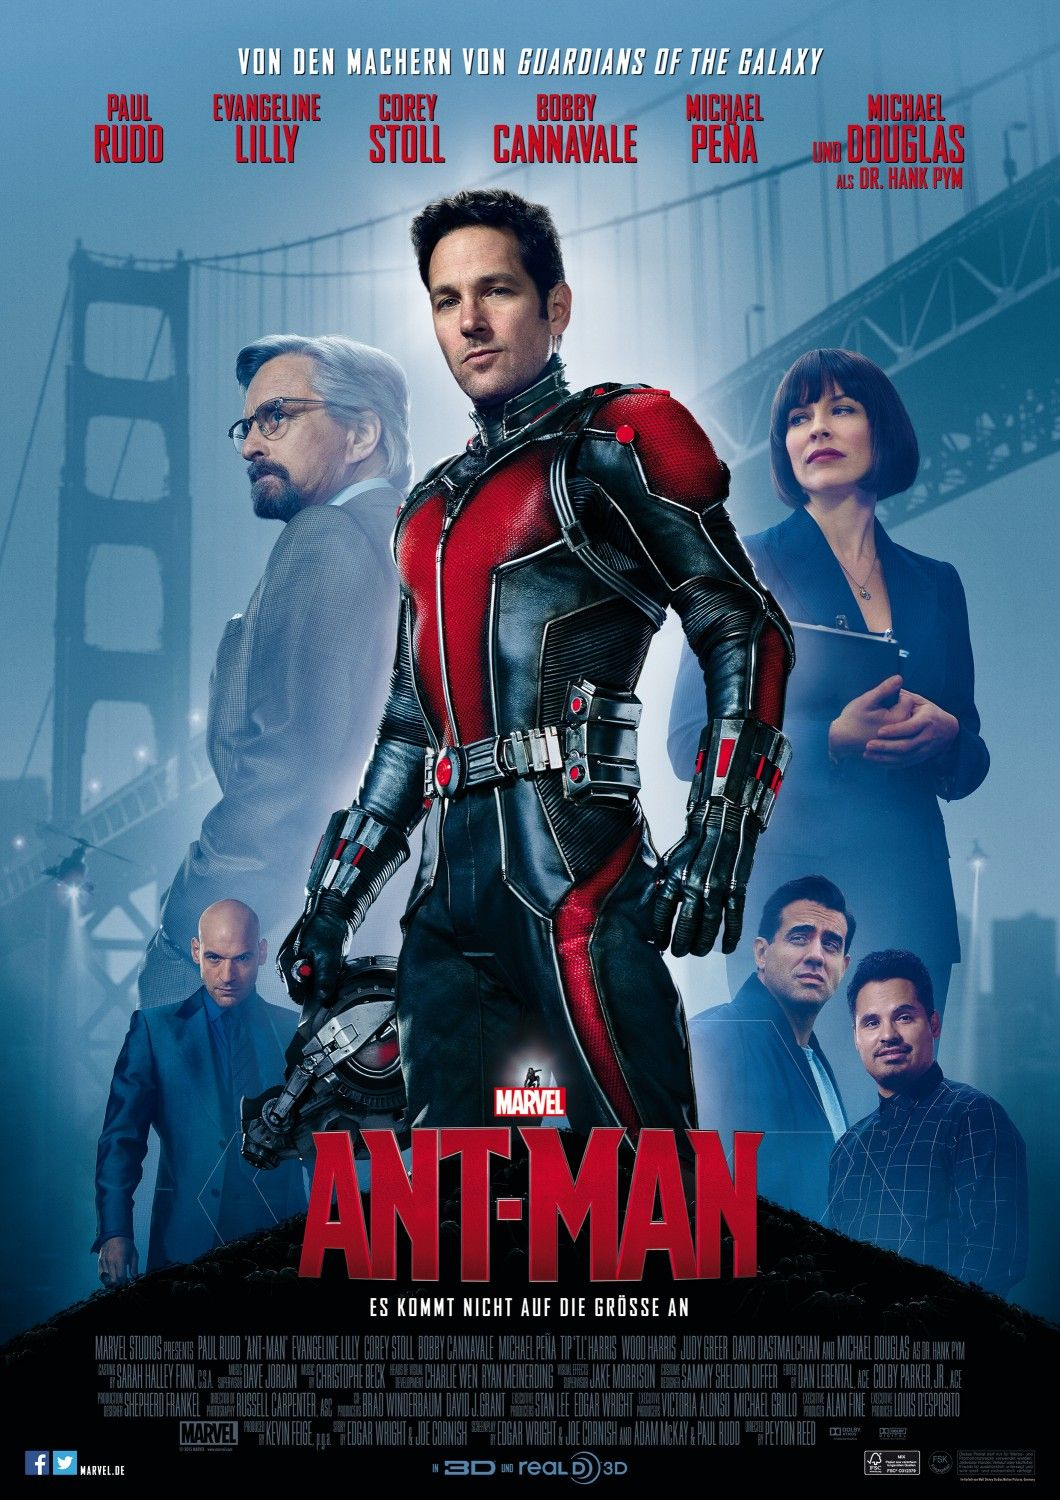 Ant-Man 2015 BluRay 720p 570MB Dual Audio ( Hindi 5.1 – English 5.1 ) MKV